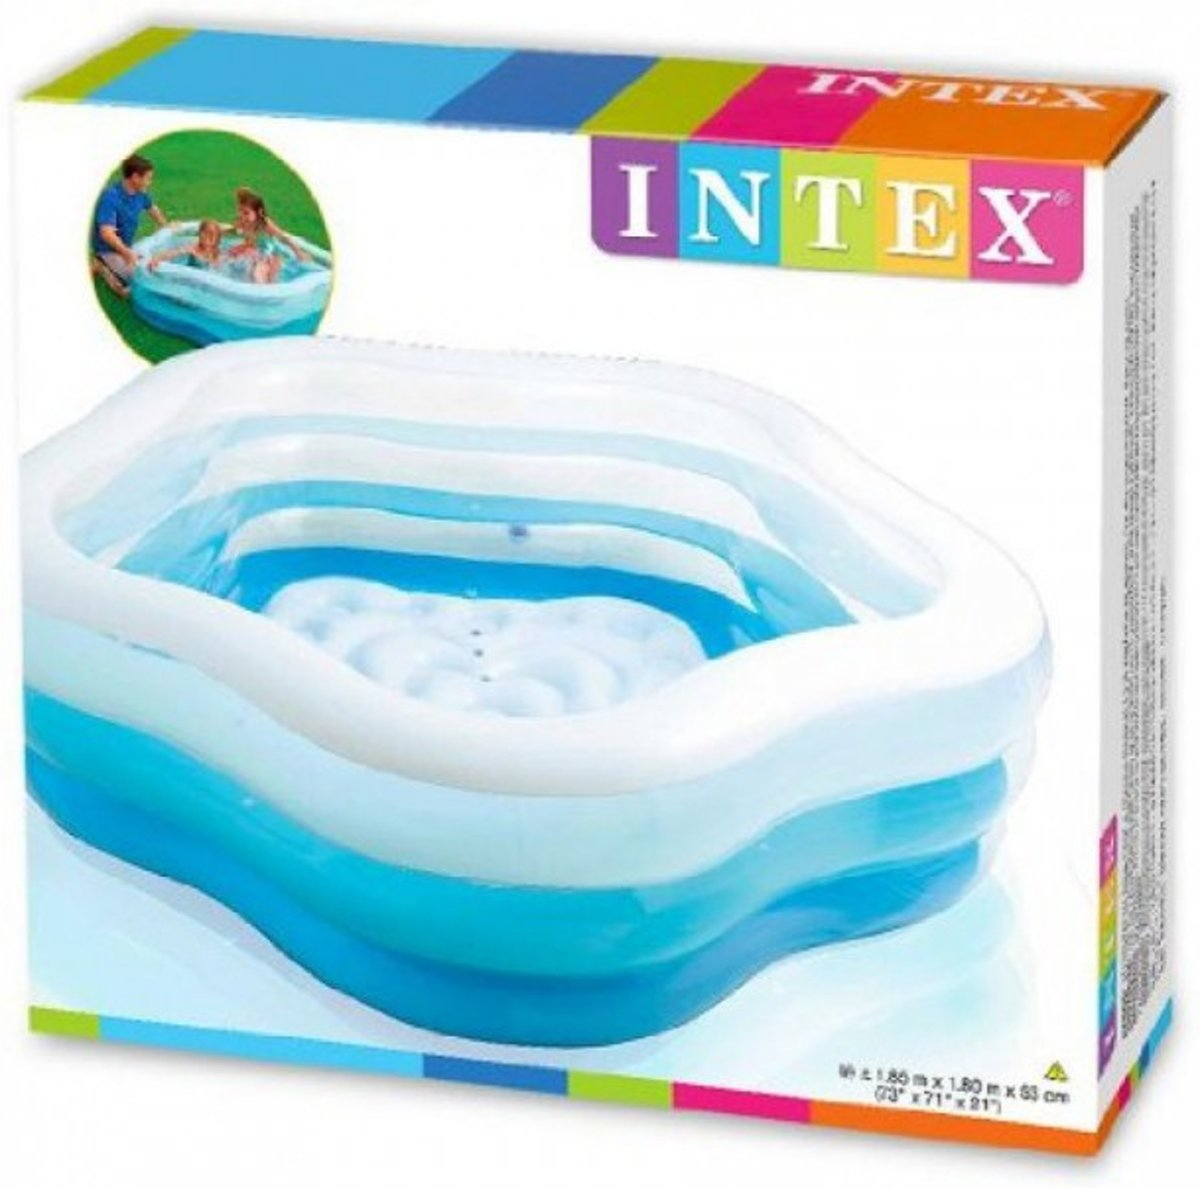 Intex - Opblaaszwembad Summer Colors